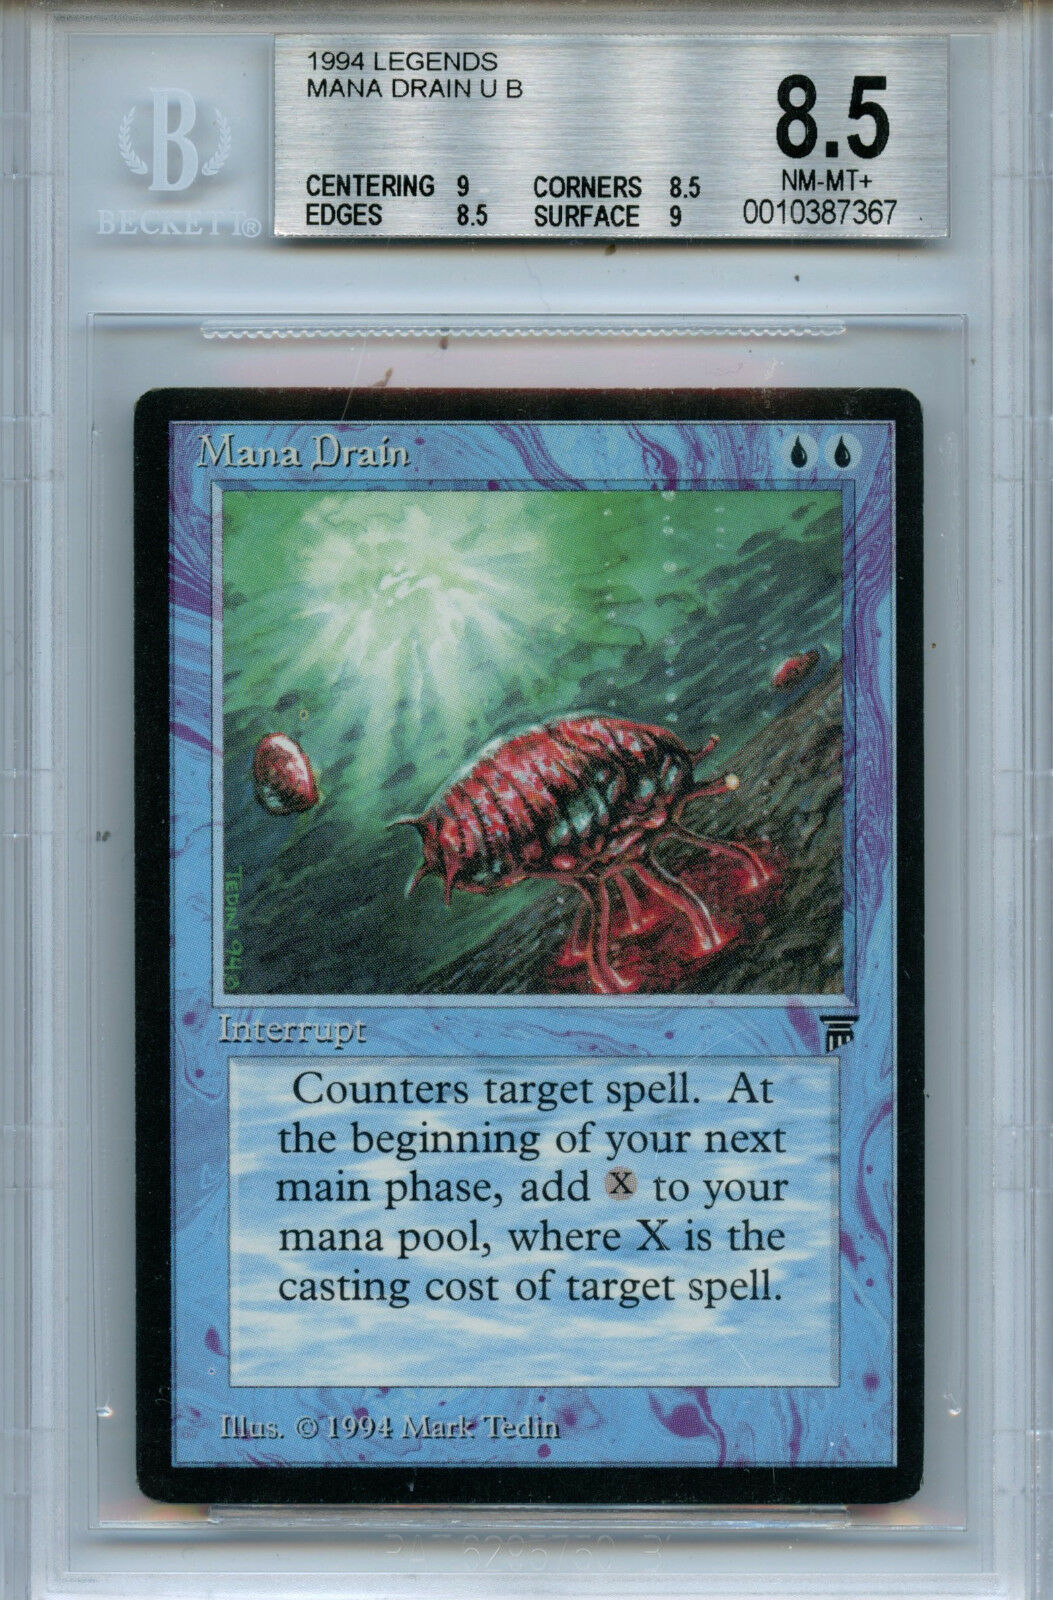 MTG Legends Mana Drain BGS 8.5 NM-MT+ Magic the Gathering WOTC card 7367